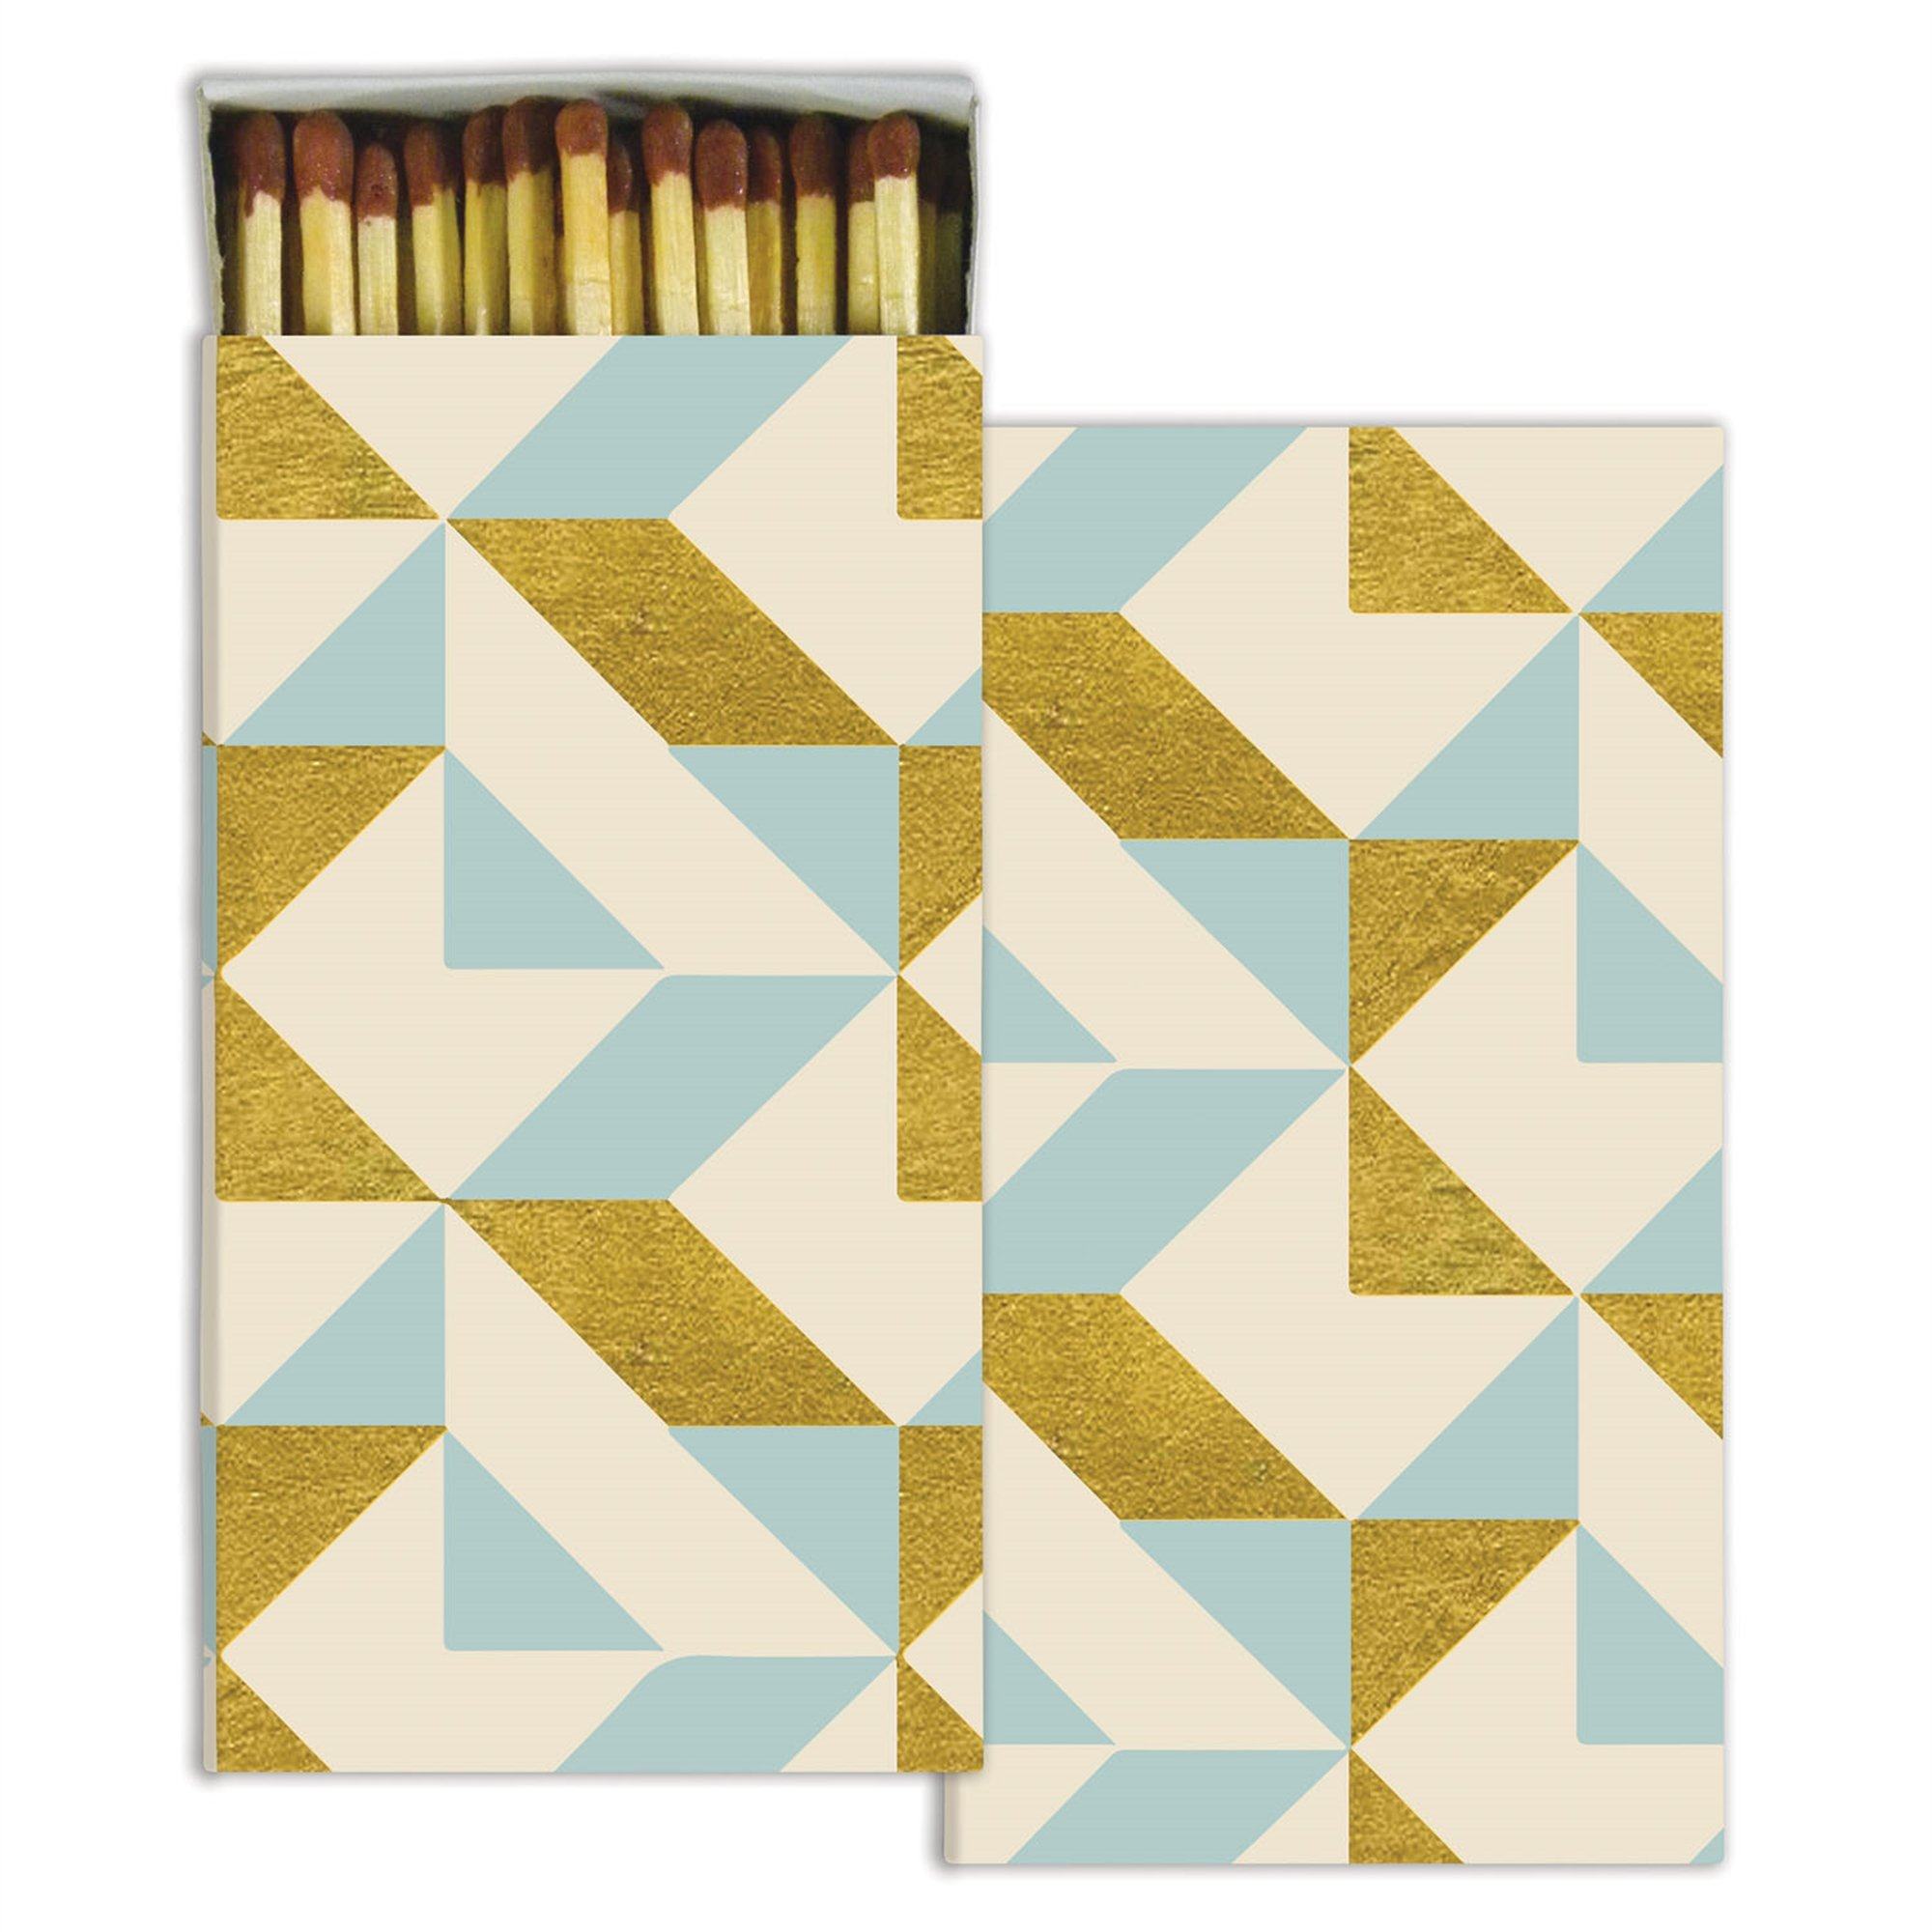 HomArt Large Decorative Colette Graphic Candle and Fireplace Wood Matches (Set of 10)